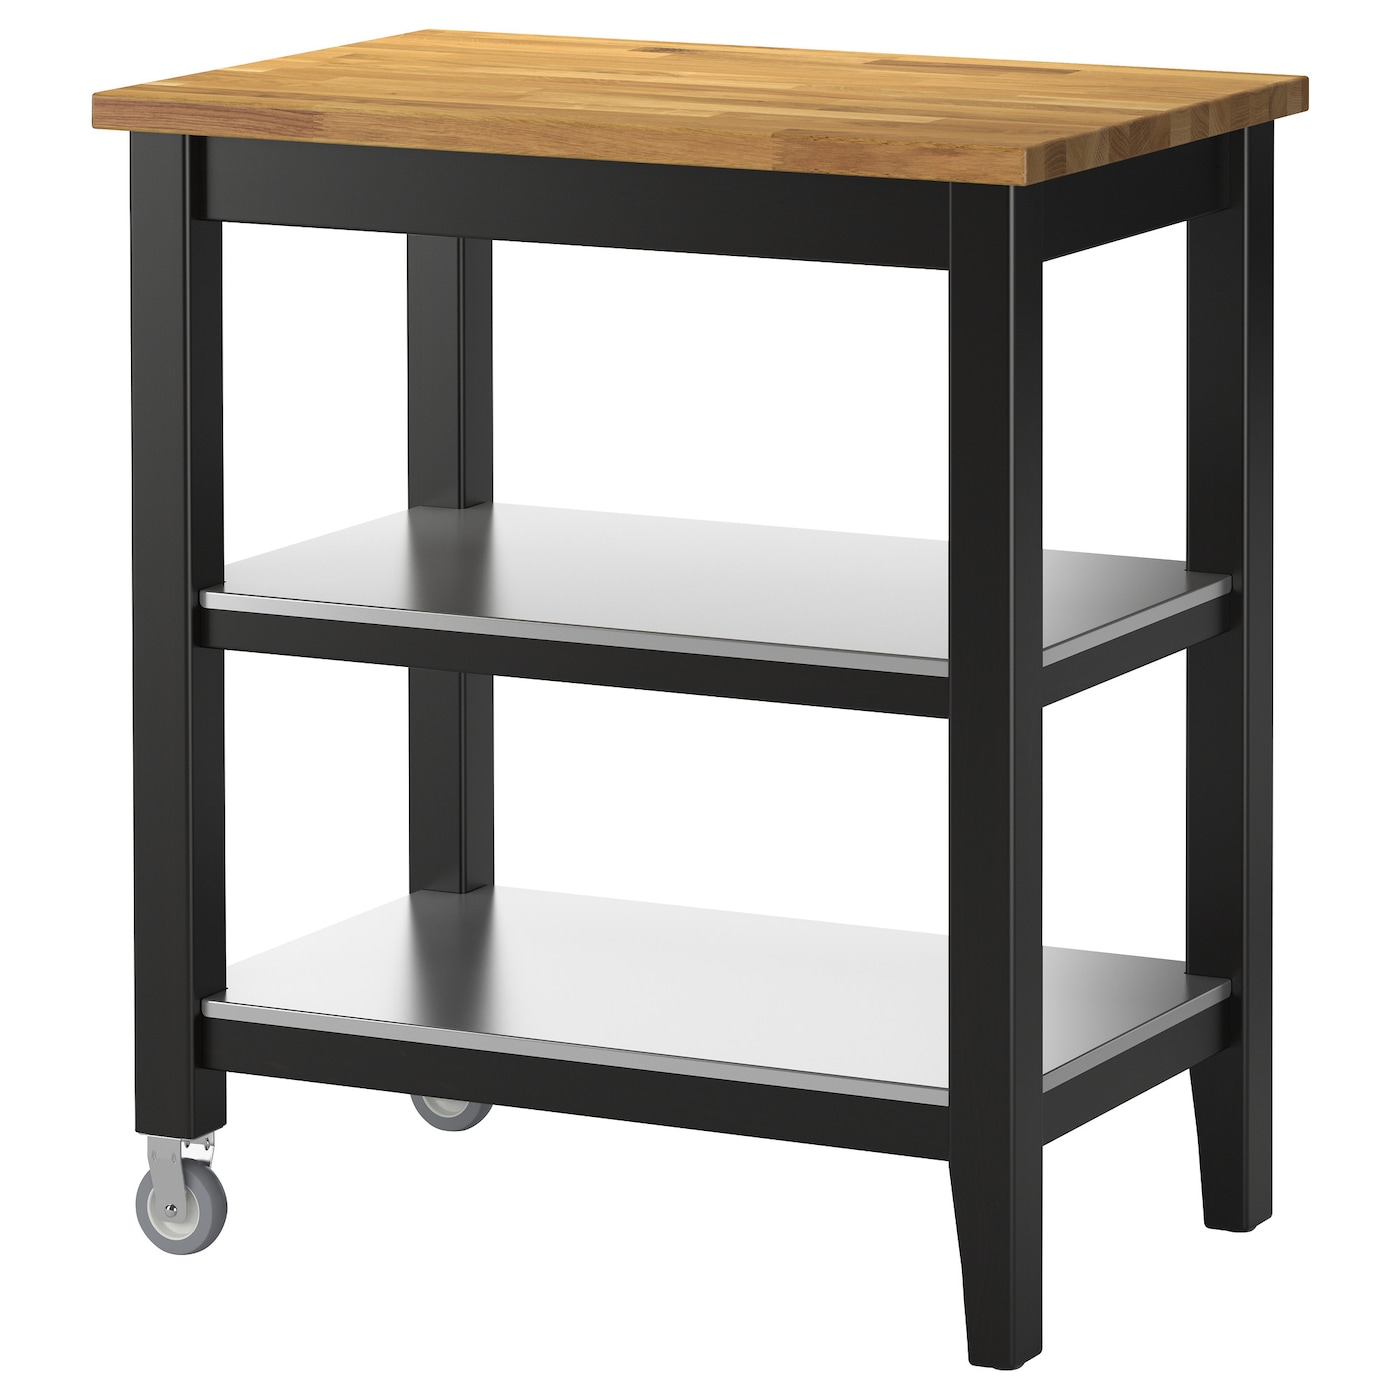 Stenstorp Kitchen Trolley Blackbrownoak 79 X 51 X 90 Cm. Small Dining Room Paint Ideas. Southern Style Living Rooms. 2 Point Perspective Living Room. Glass Shelves In Living Room. Living Room Floor Seating. Trunks For Living Room. Living Room Tree. Round Living Room Furniture